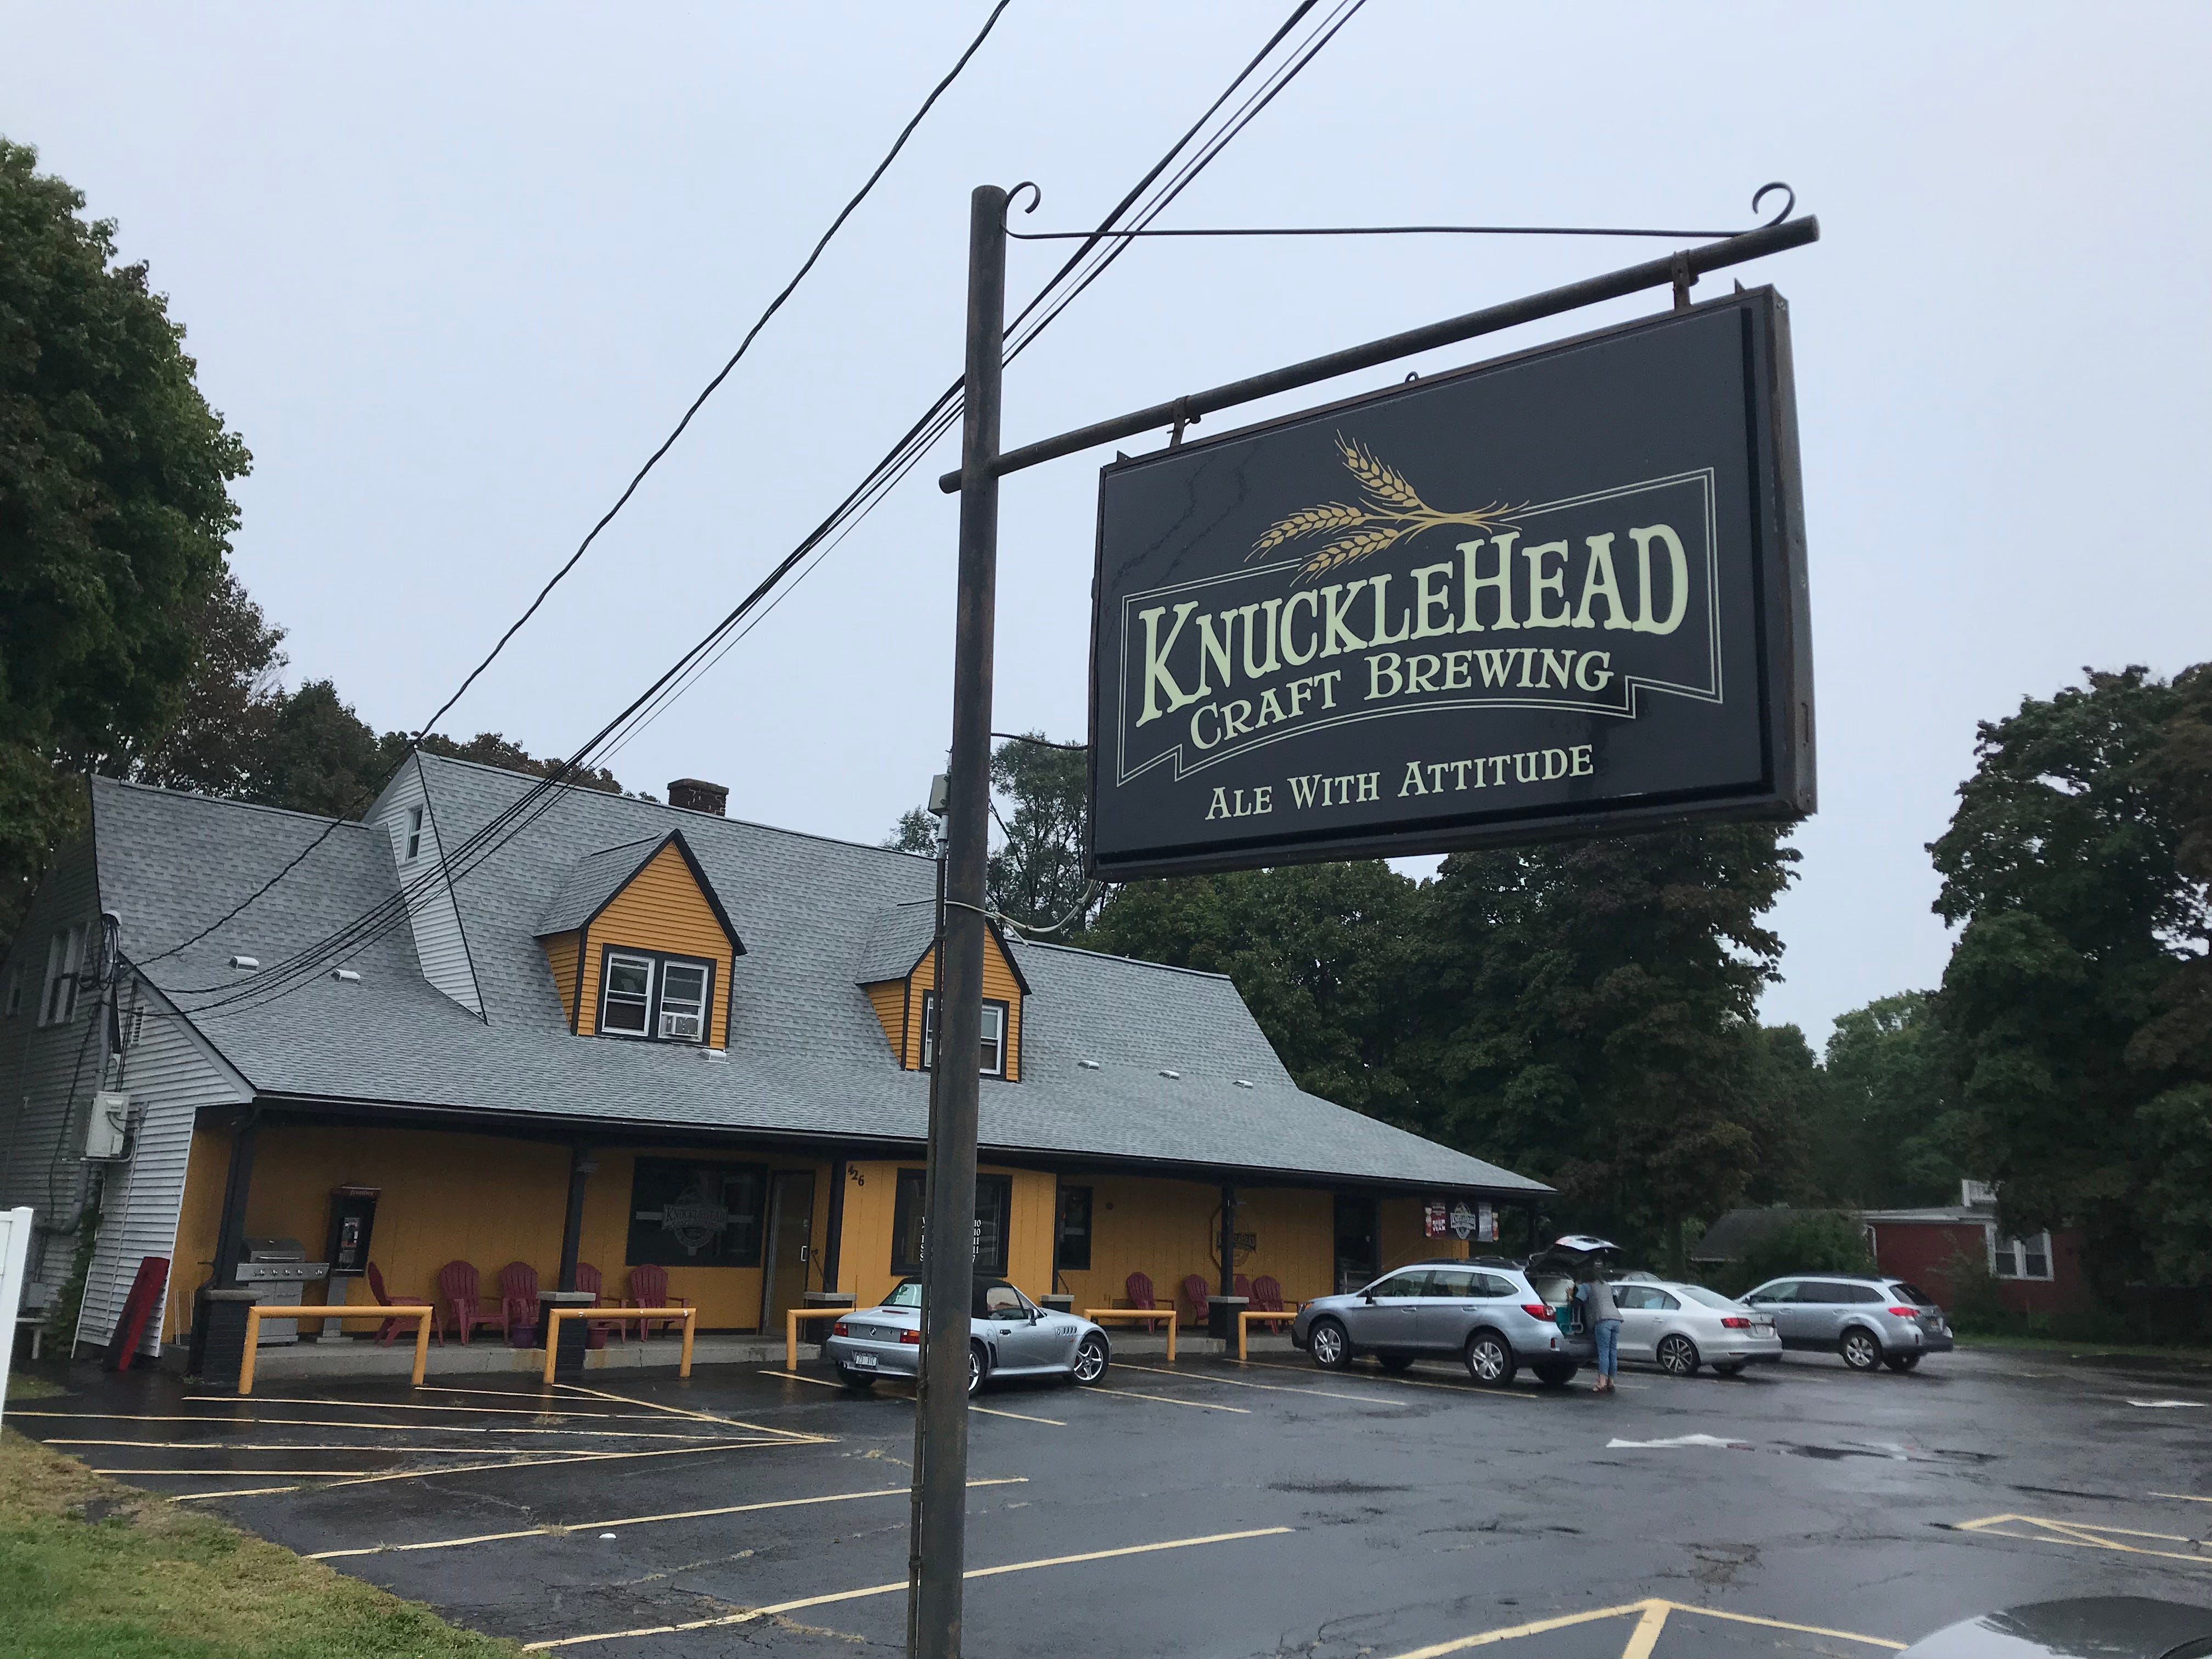 Knucklehead Craft Brewing in Webster is the building formerly housed Seitz's grocery store.